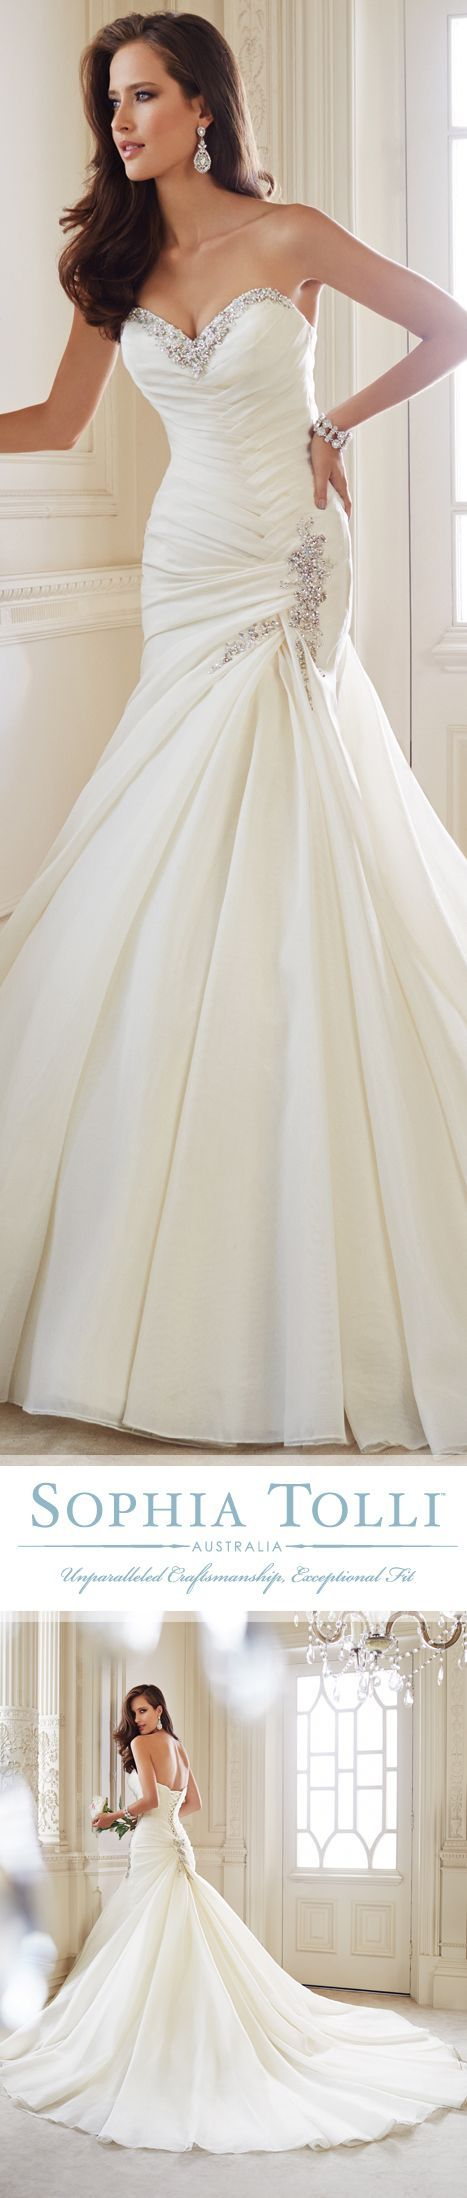 """I found THE gown"" ""say YES to this dress"" I'm in LOVE! I just want gold embellishments. This will be my wedding dress"